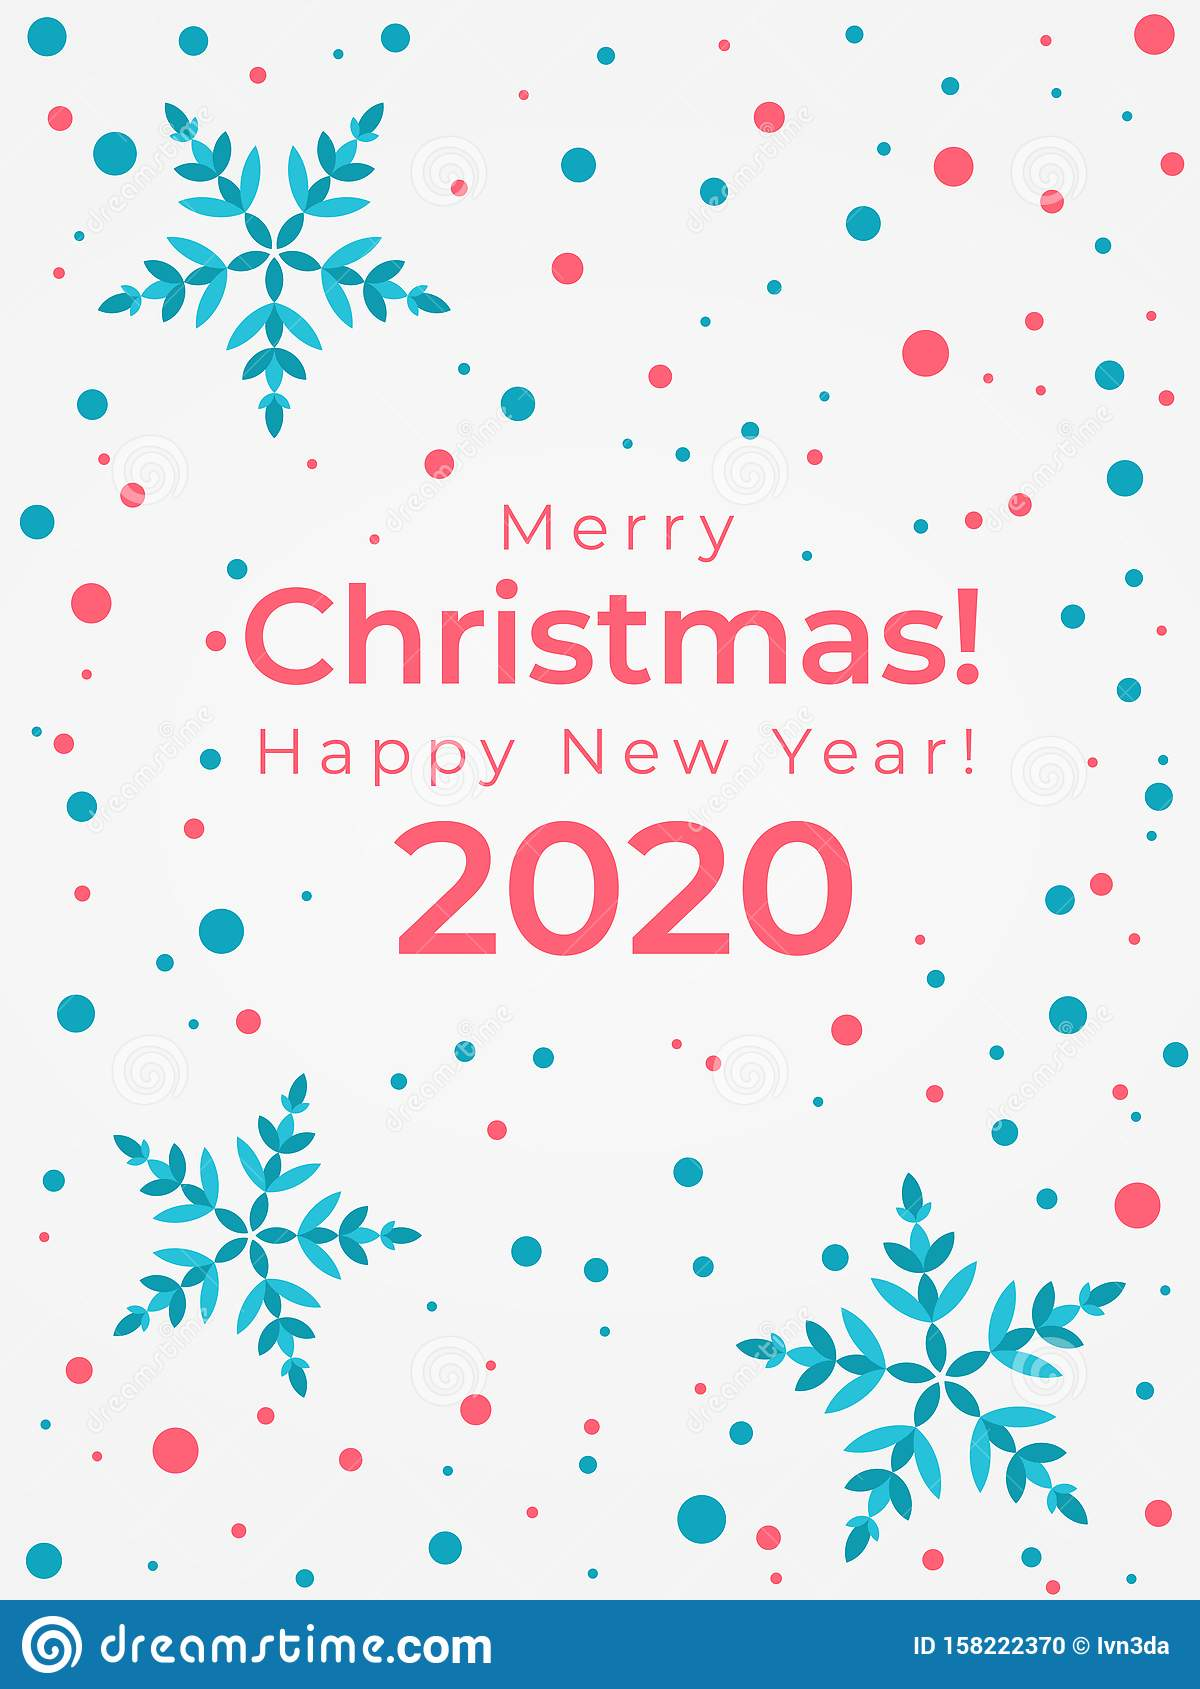 Merry Christmas And Happy New Year 2020 Greeting Card Stock Vector